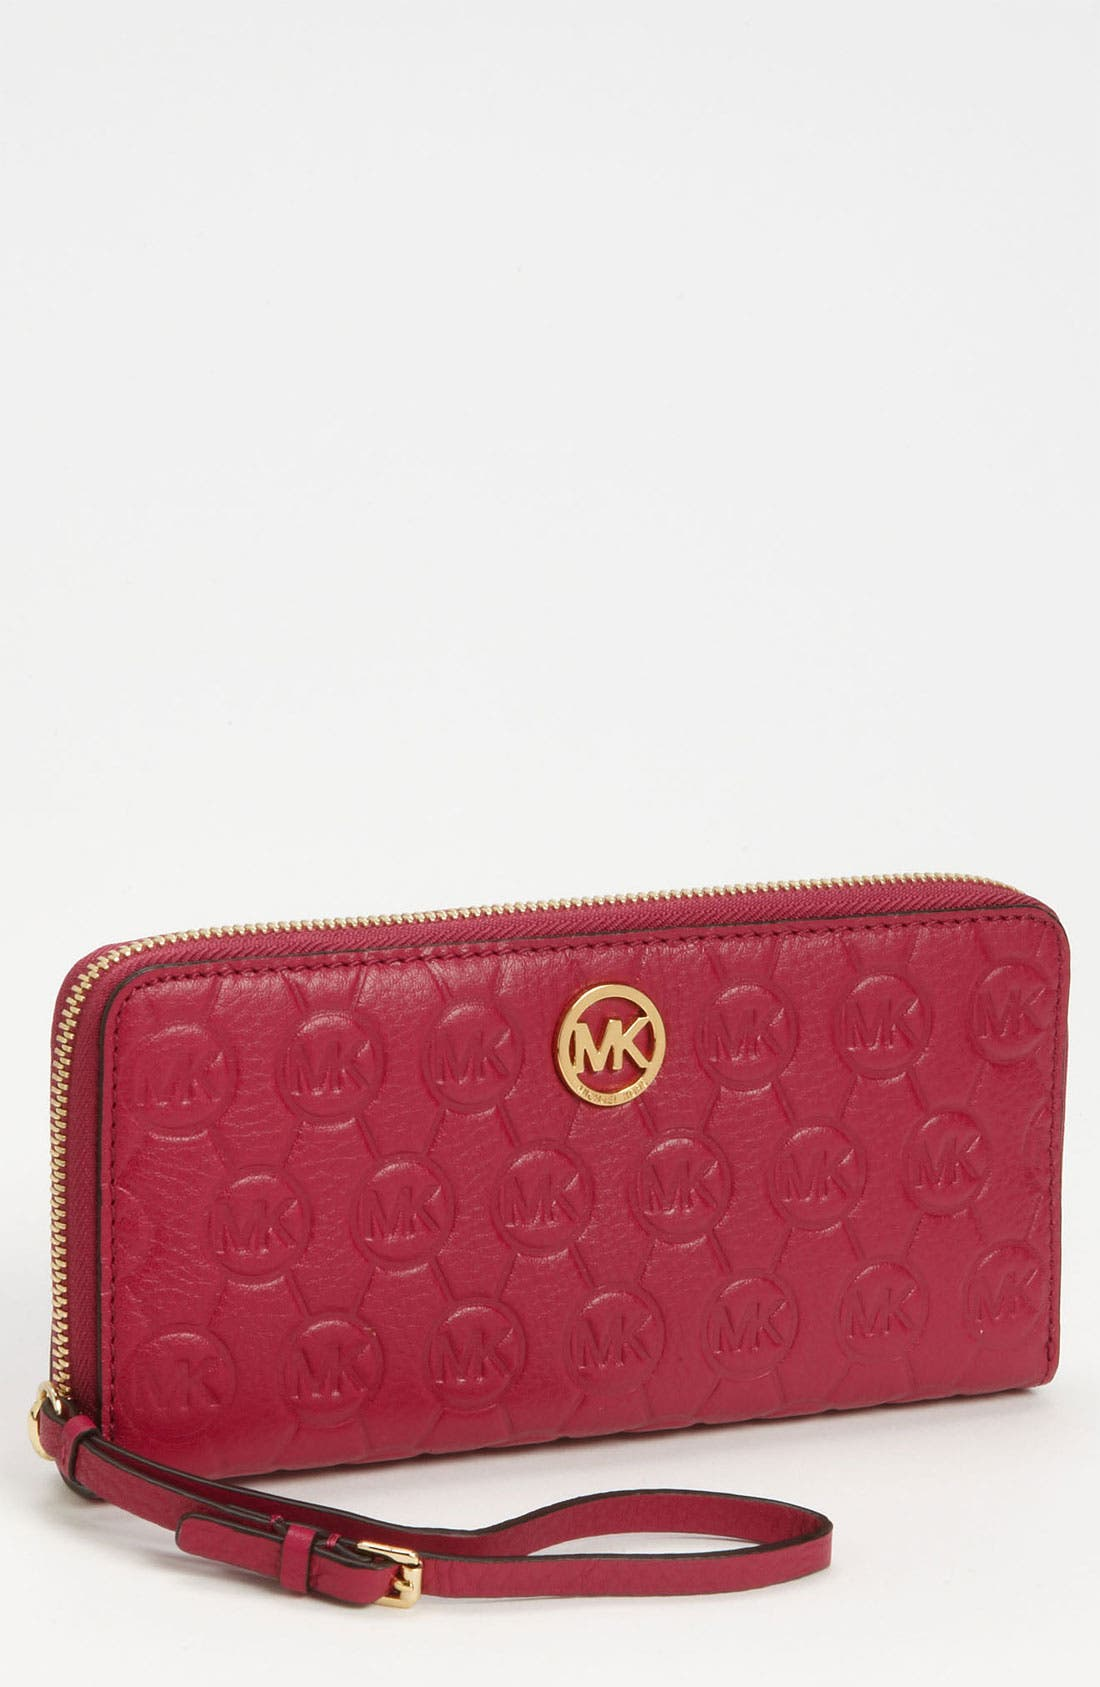 Alternate Image 1 Selected - MICHAEL Michael Kors Monogram Embossed Leather Wallet